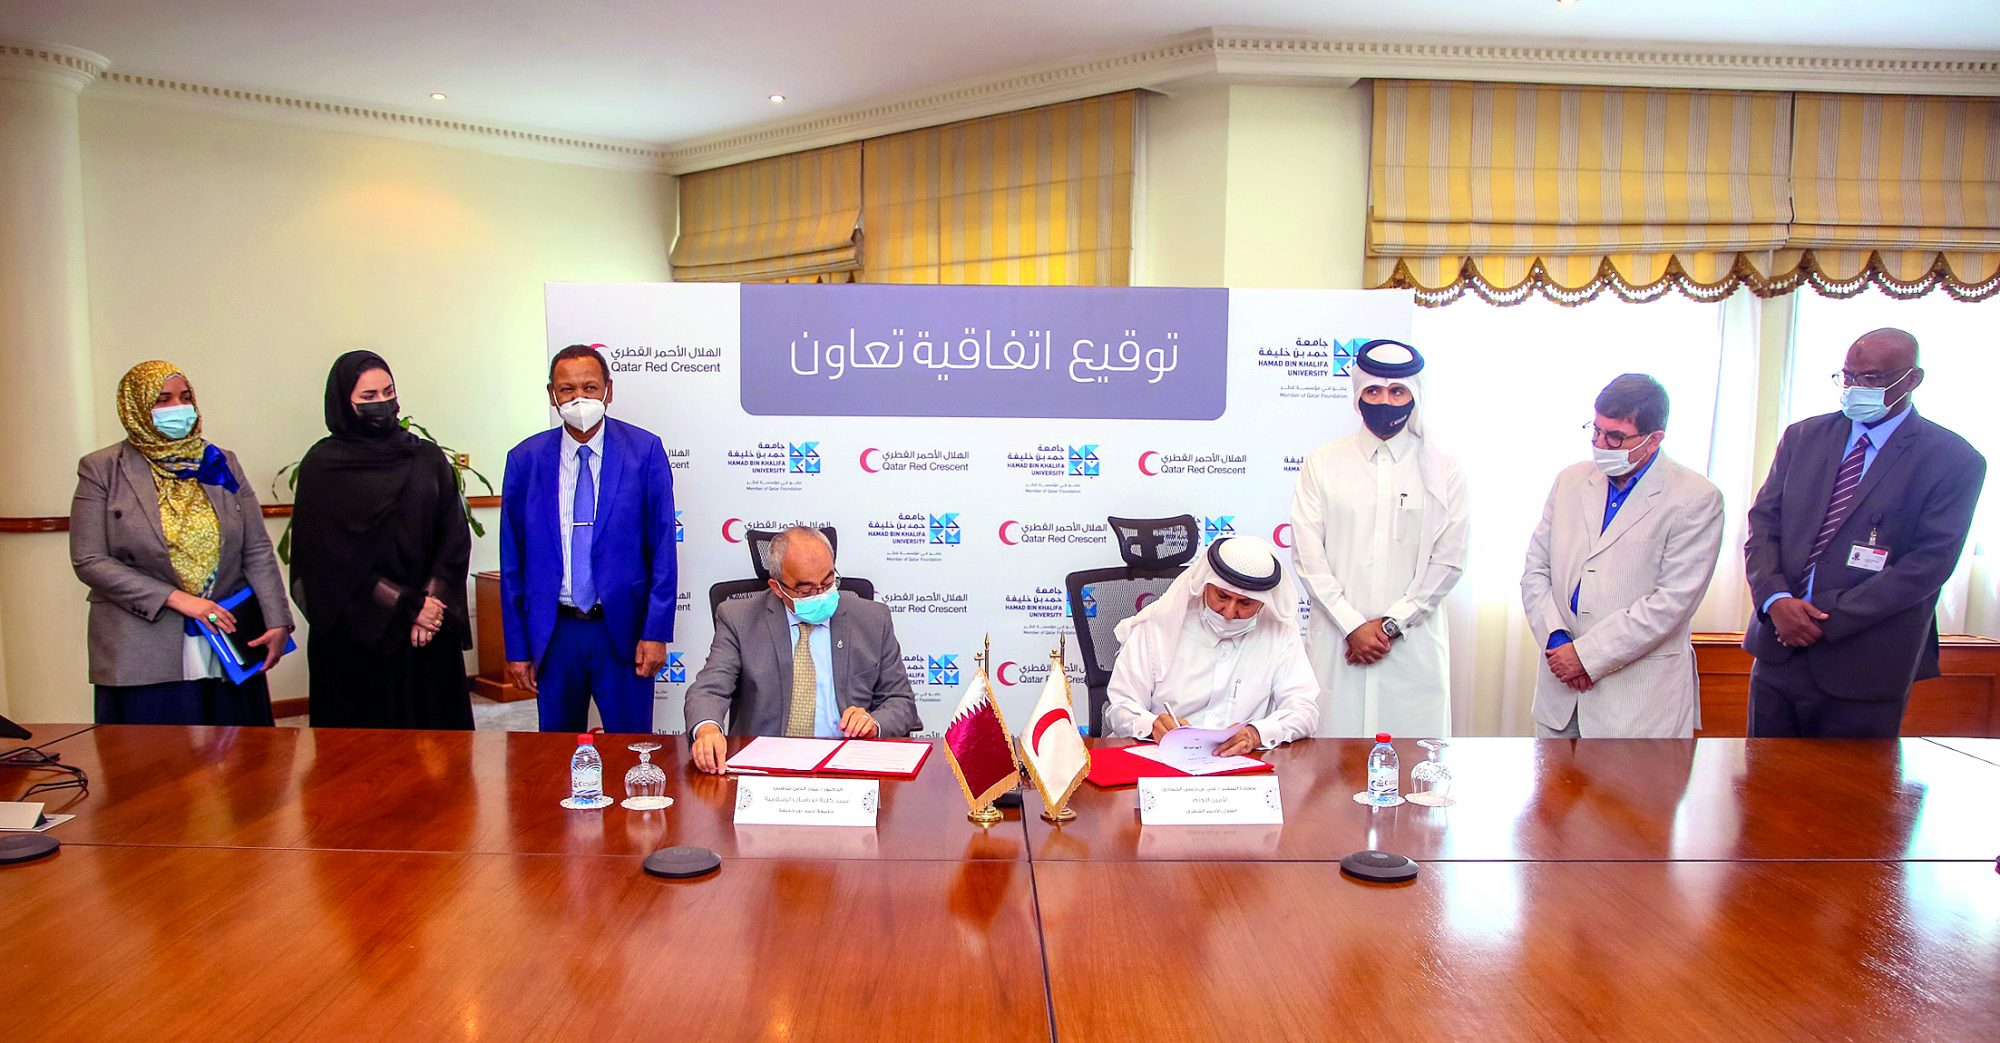 QRCS and HBKU Sign an Agreement to Enhance Cooperation